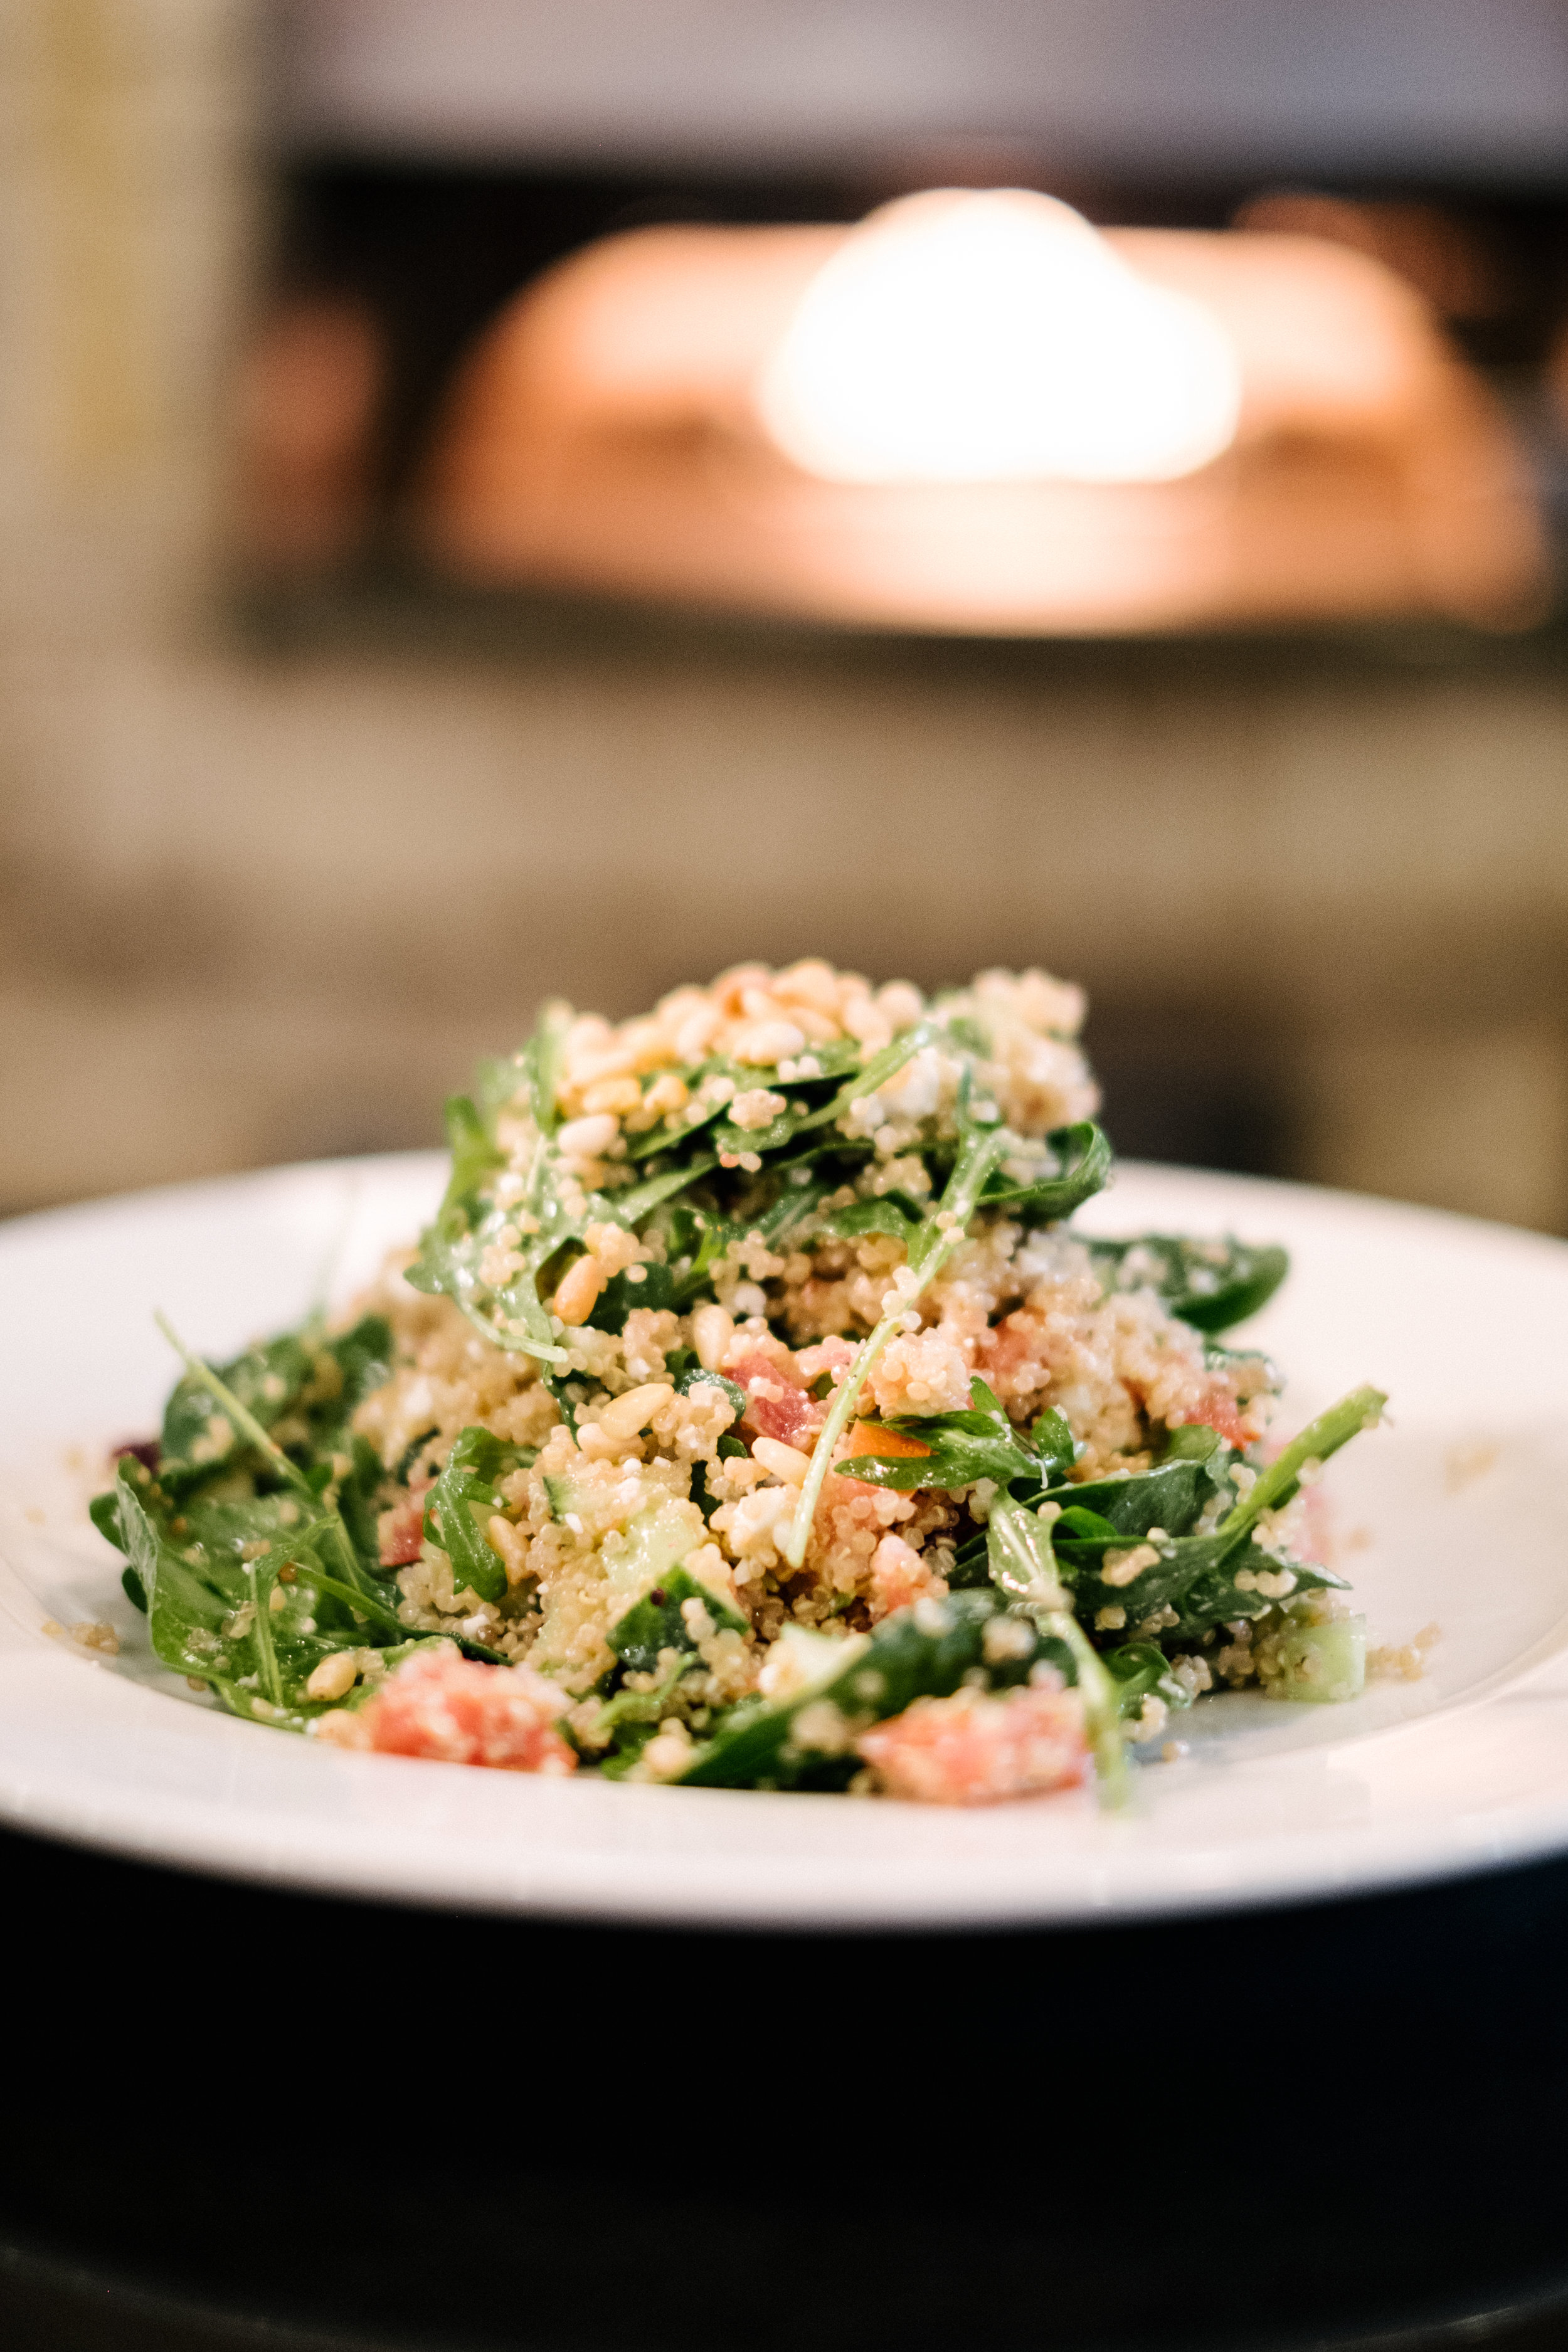 Quinoa Salad from City Cellar at CityPlace